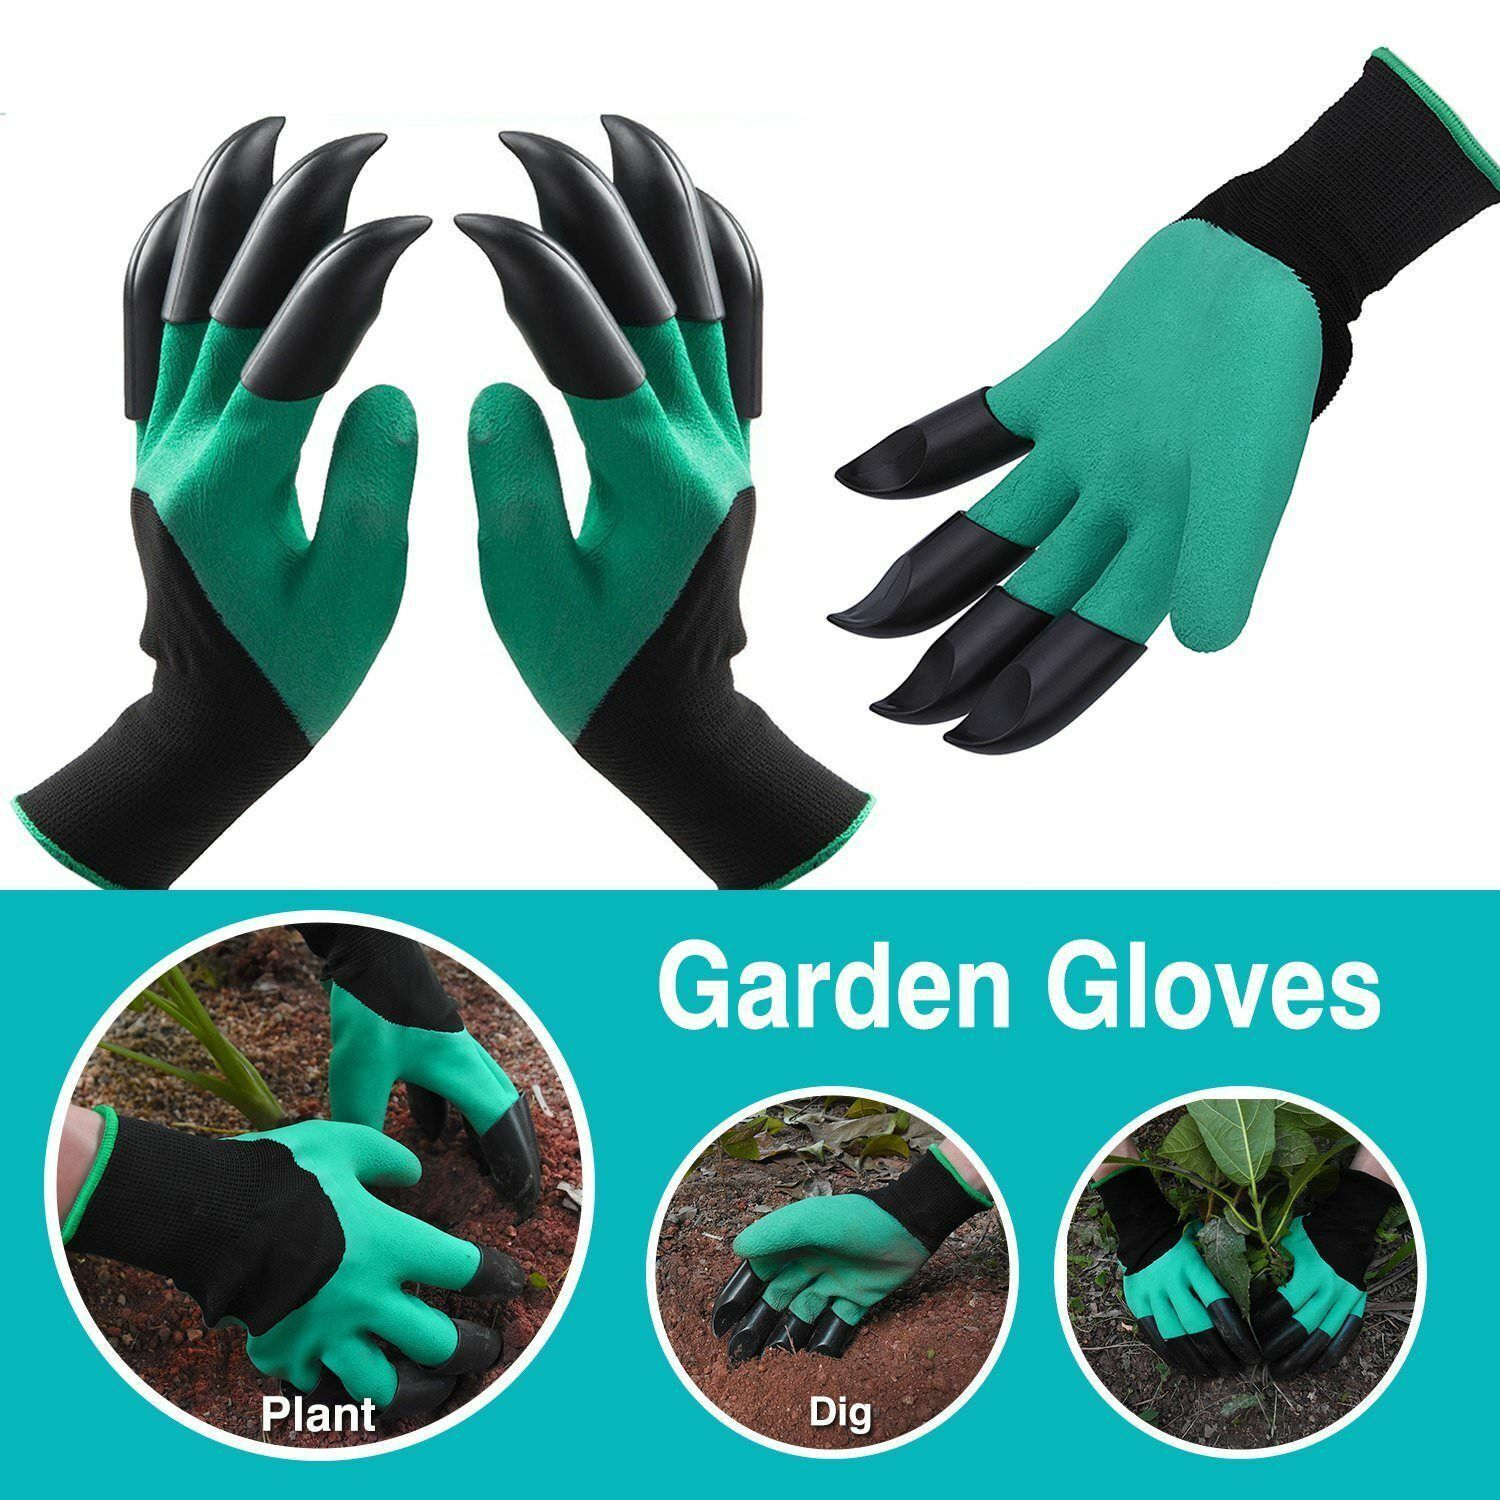 GARDEN GLOVES UNISEX ONE SIZE WITH BUILT IN CLAWS FOR EASY DIGGING GENIE STYLE